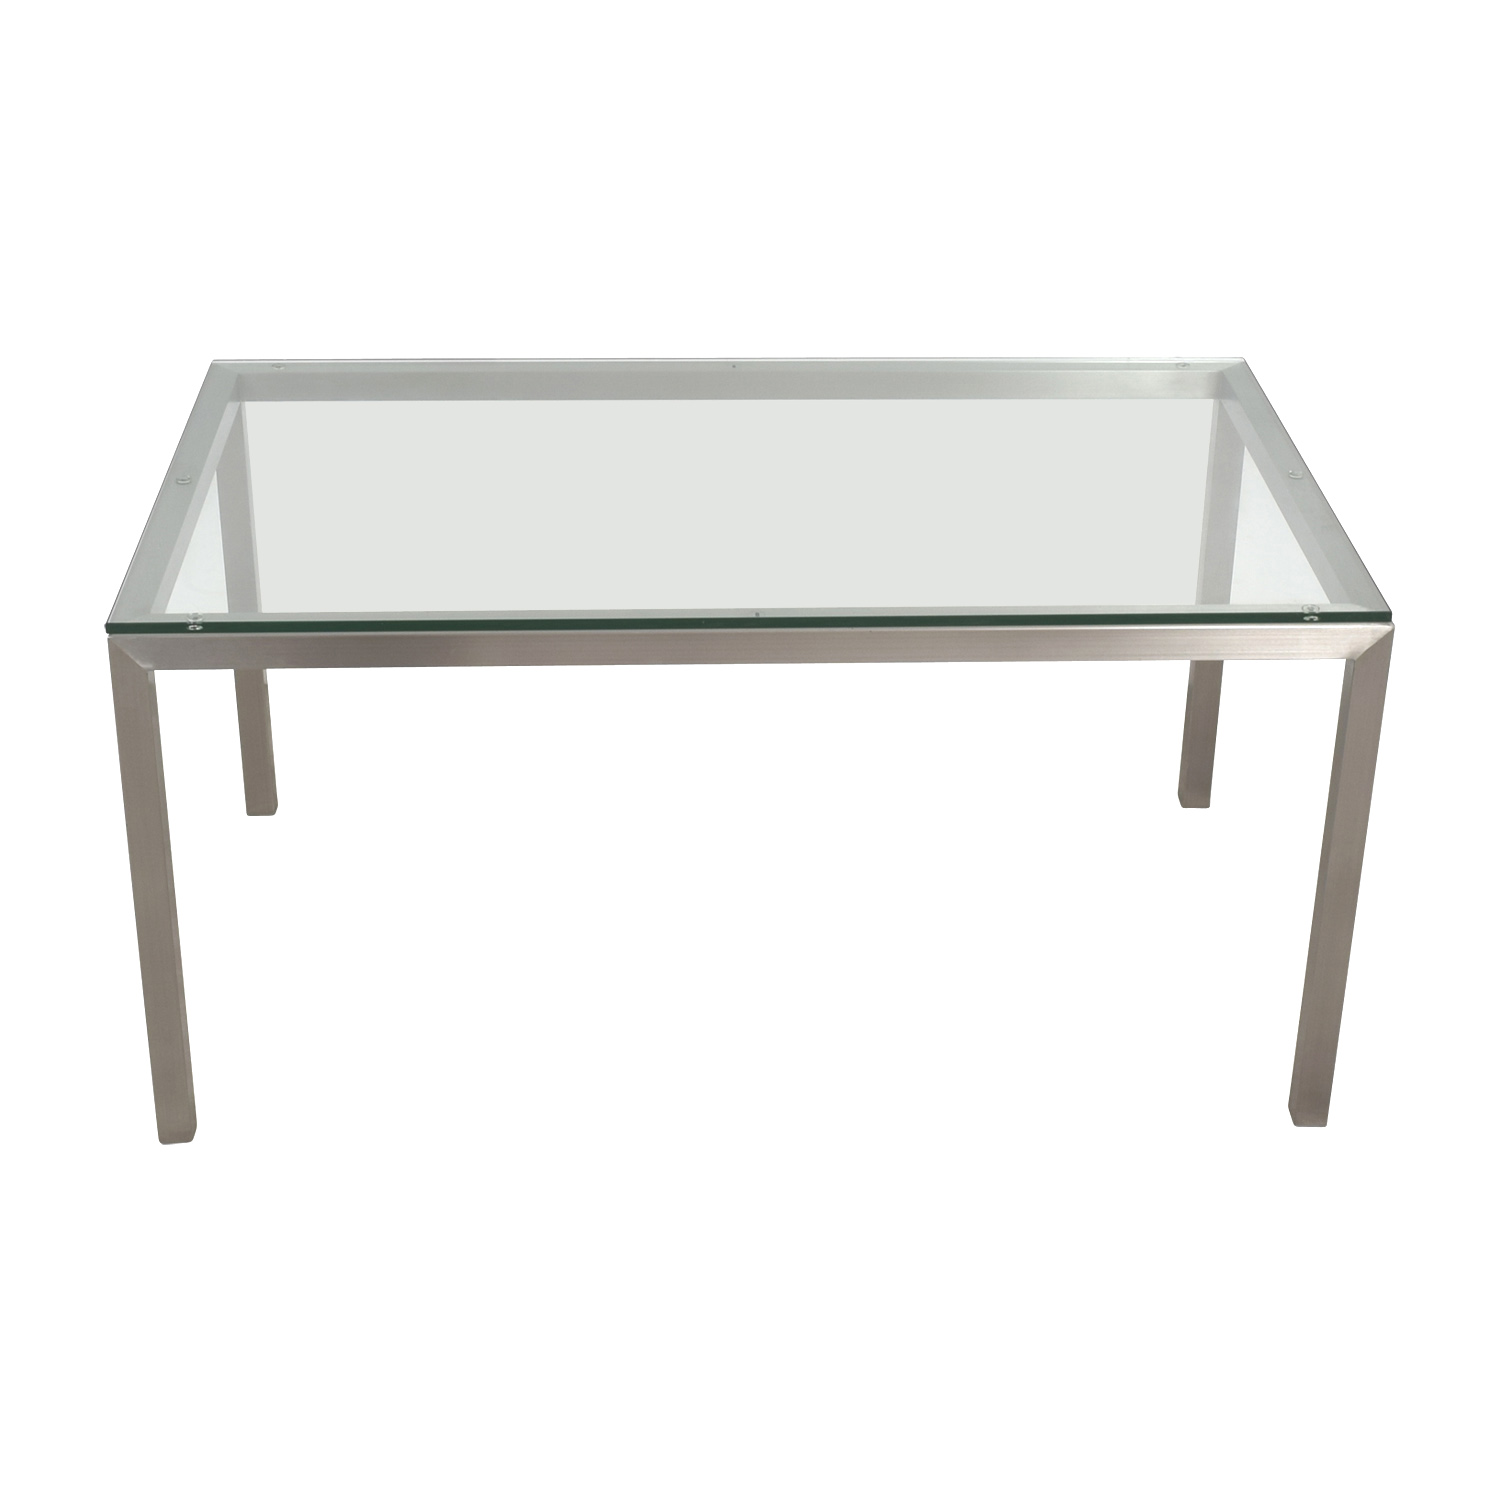 Crate & Barrel Crate & Barrel Parsons Stainless Steel Table second hand